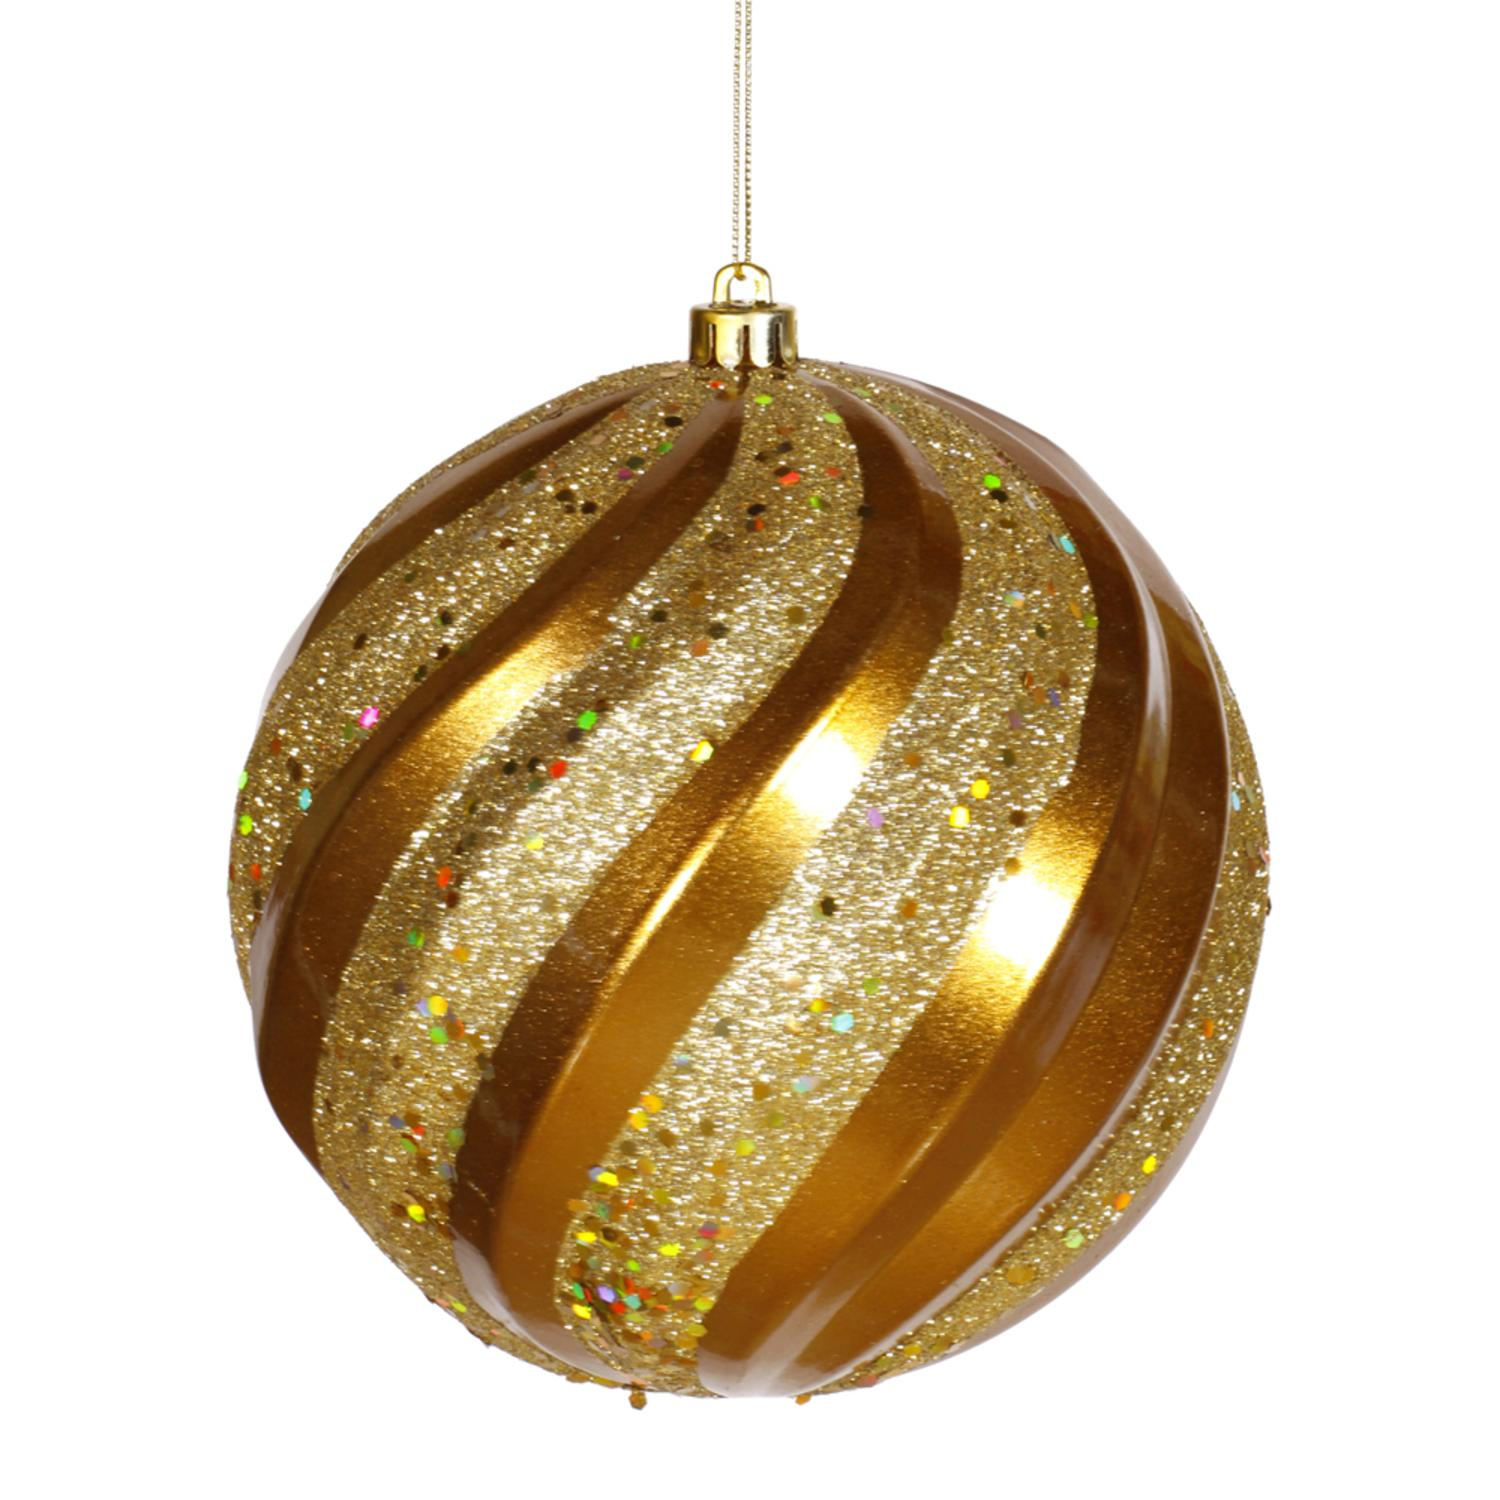 "Antique Gold Glitter Swirl Shatterproof Christmas Ball Ornament 8"" (200mm)"